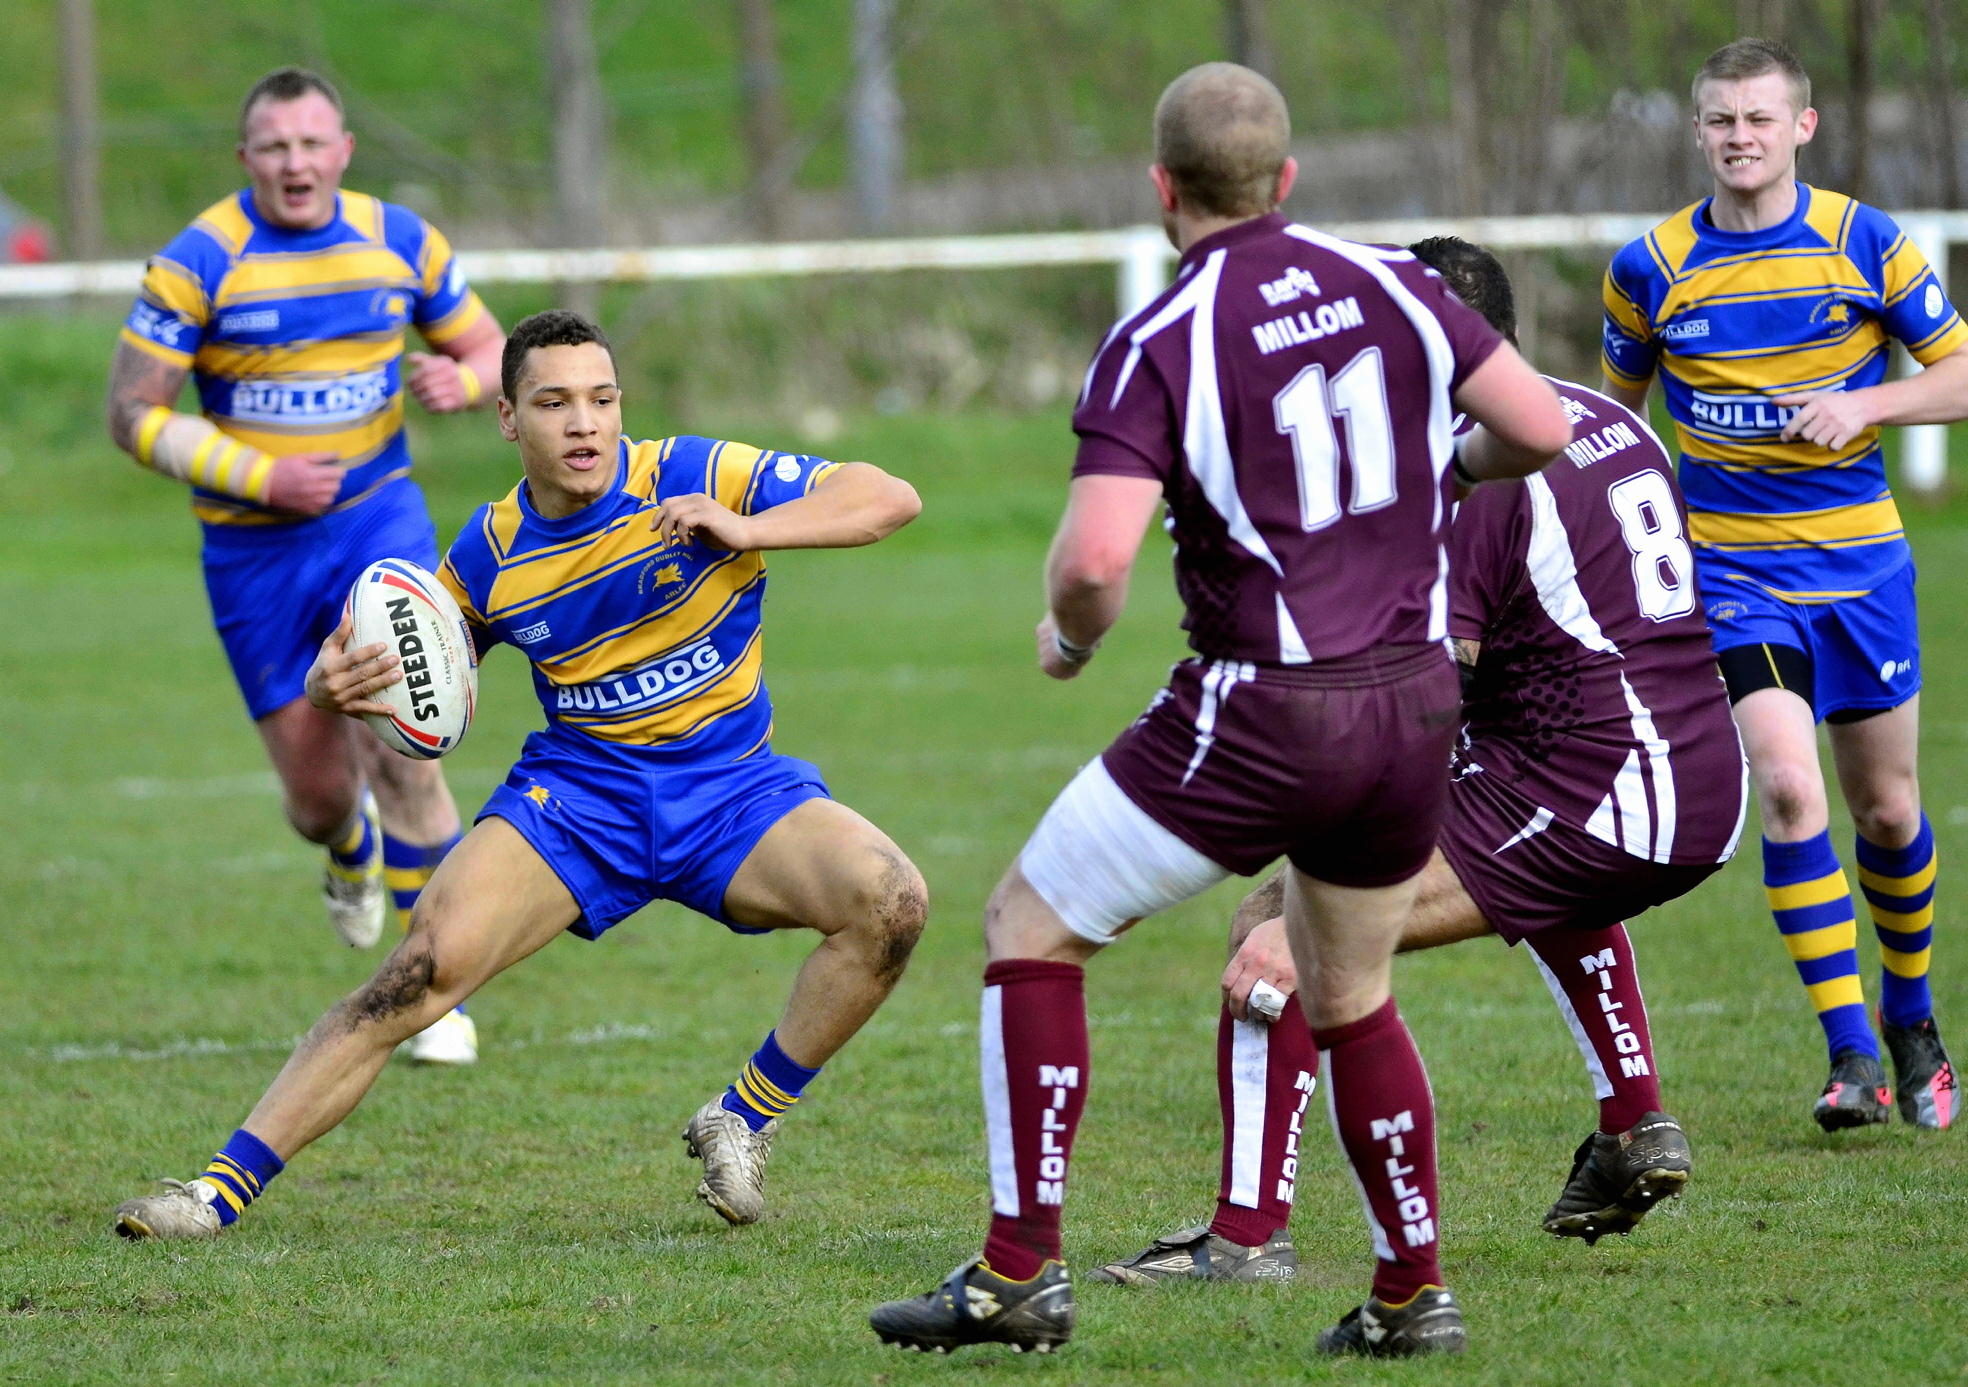 Bradford Dudley Hill's Aiden Batey in action against Millom. Bradford Dudley Hill V Millom. ts.